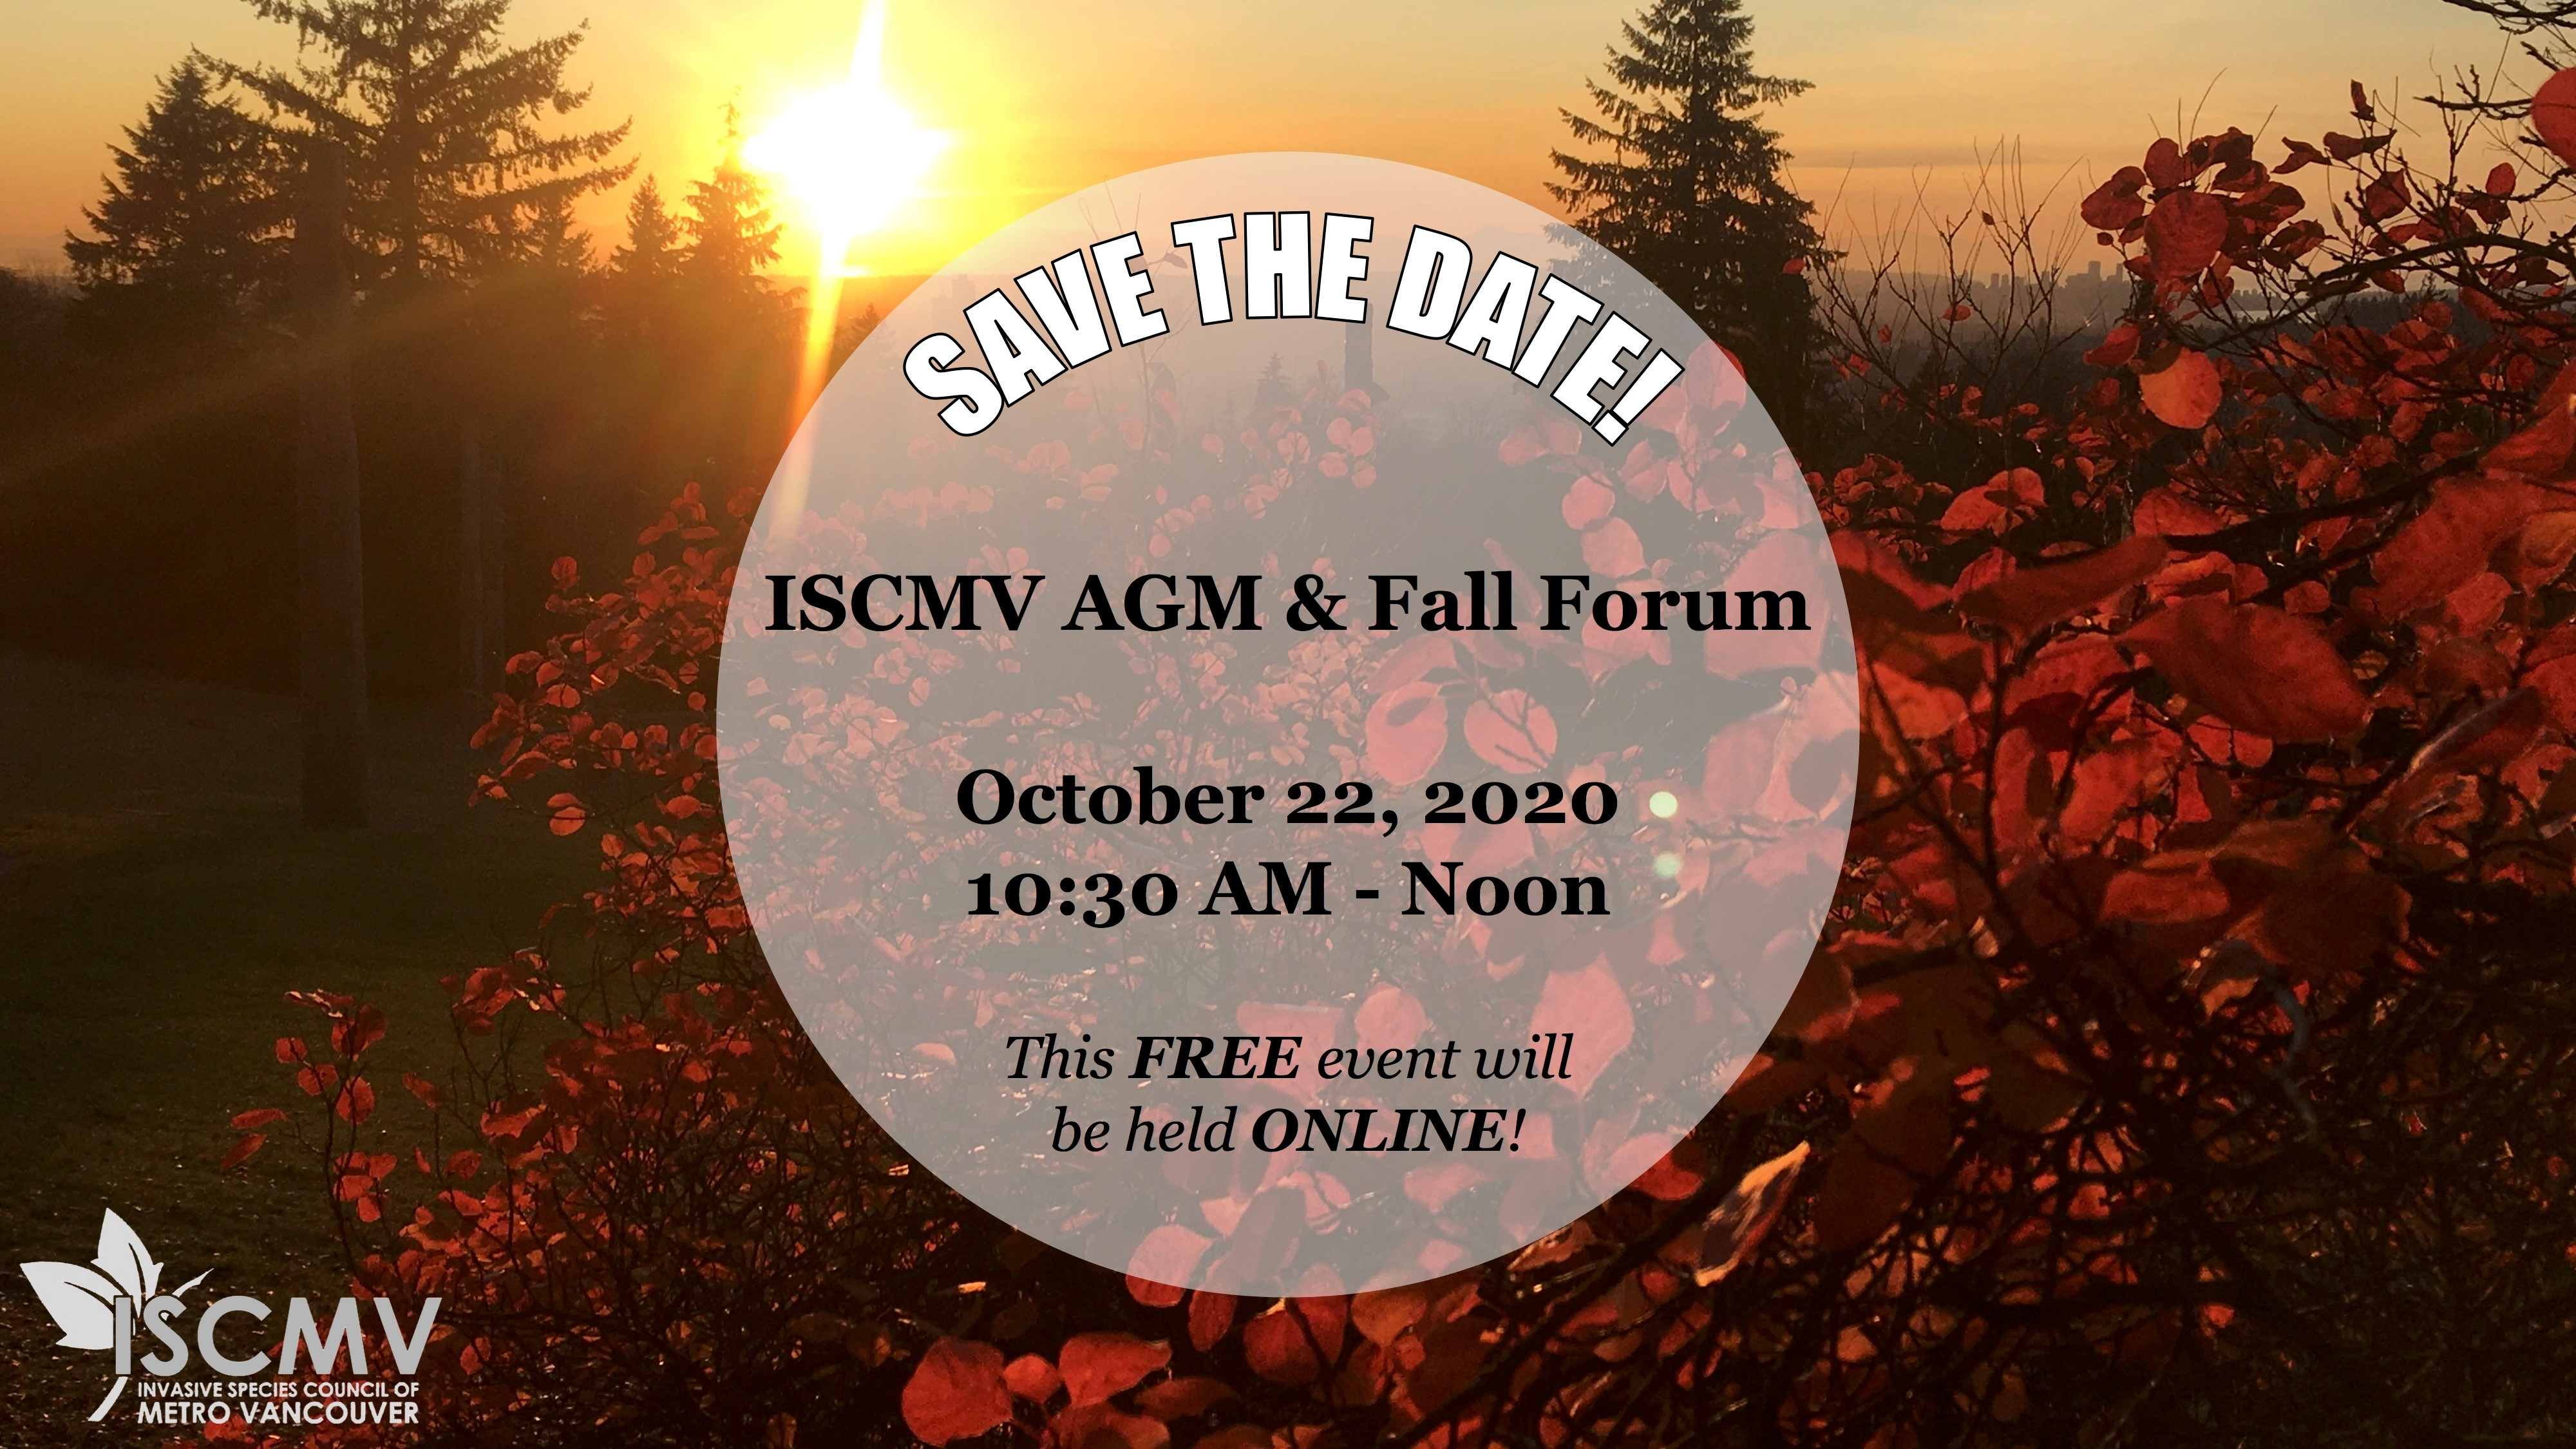 ISCMV 2020 AGM & Fall Forum photo